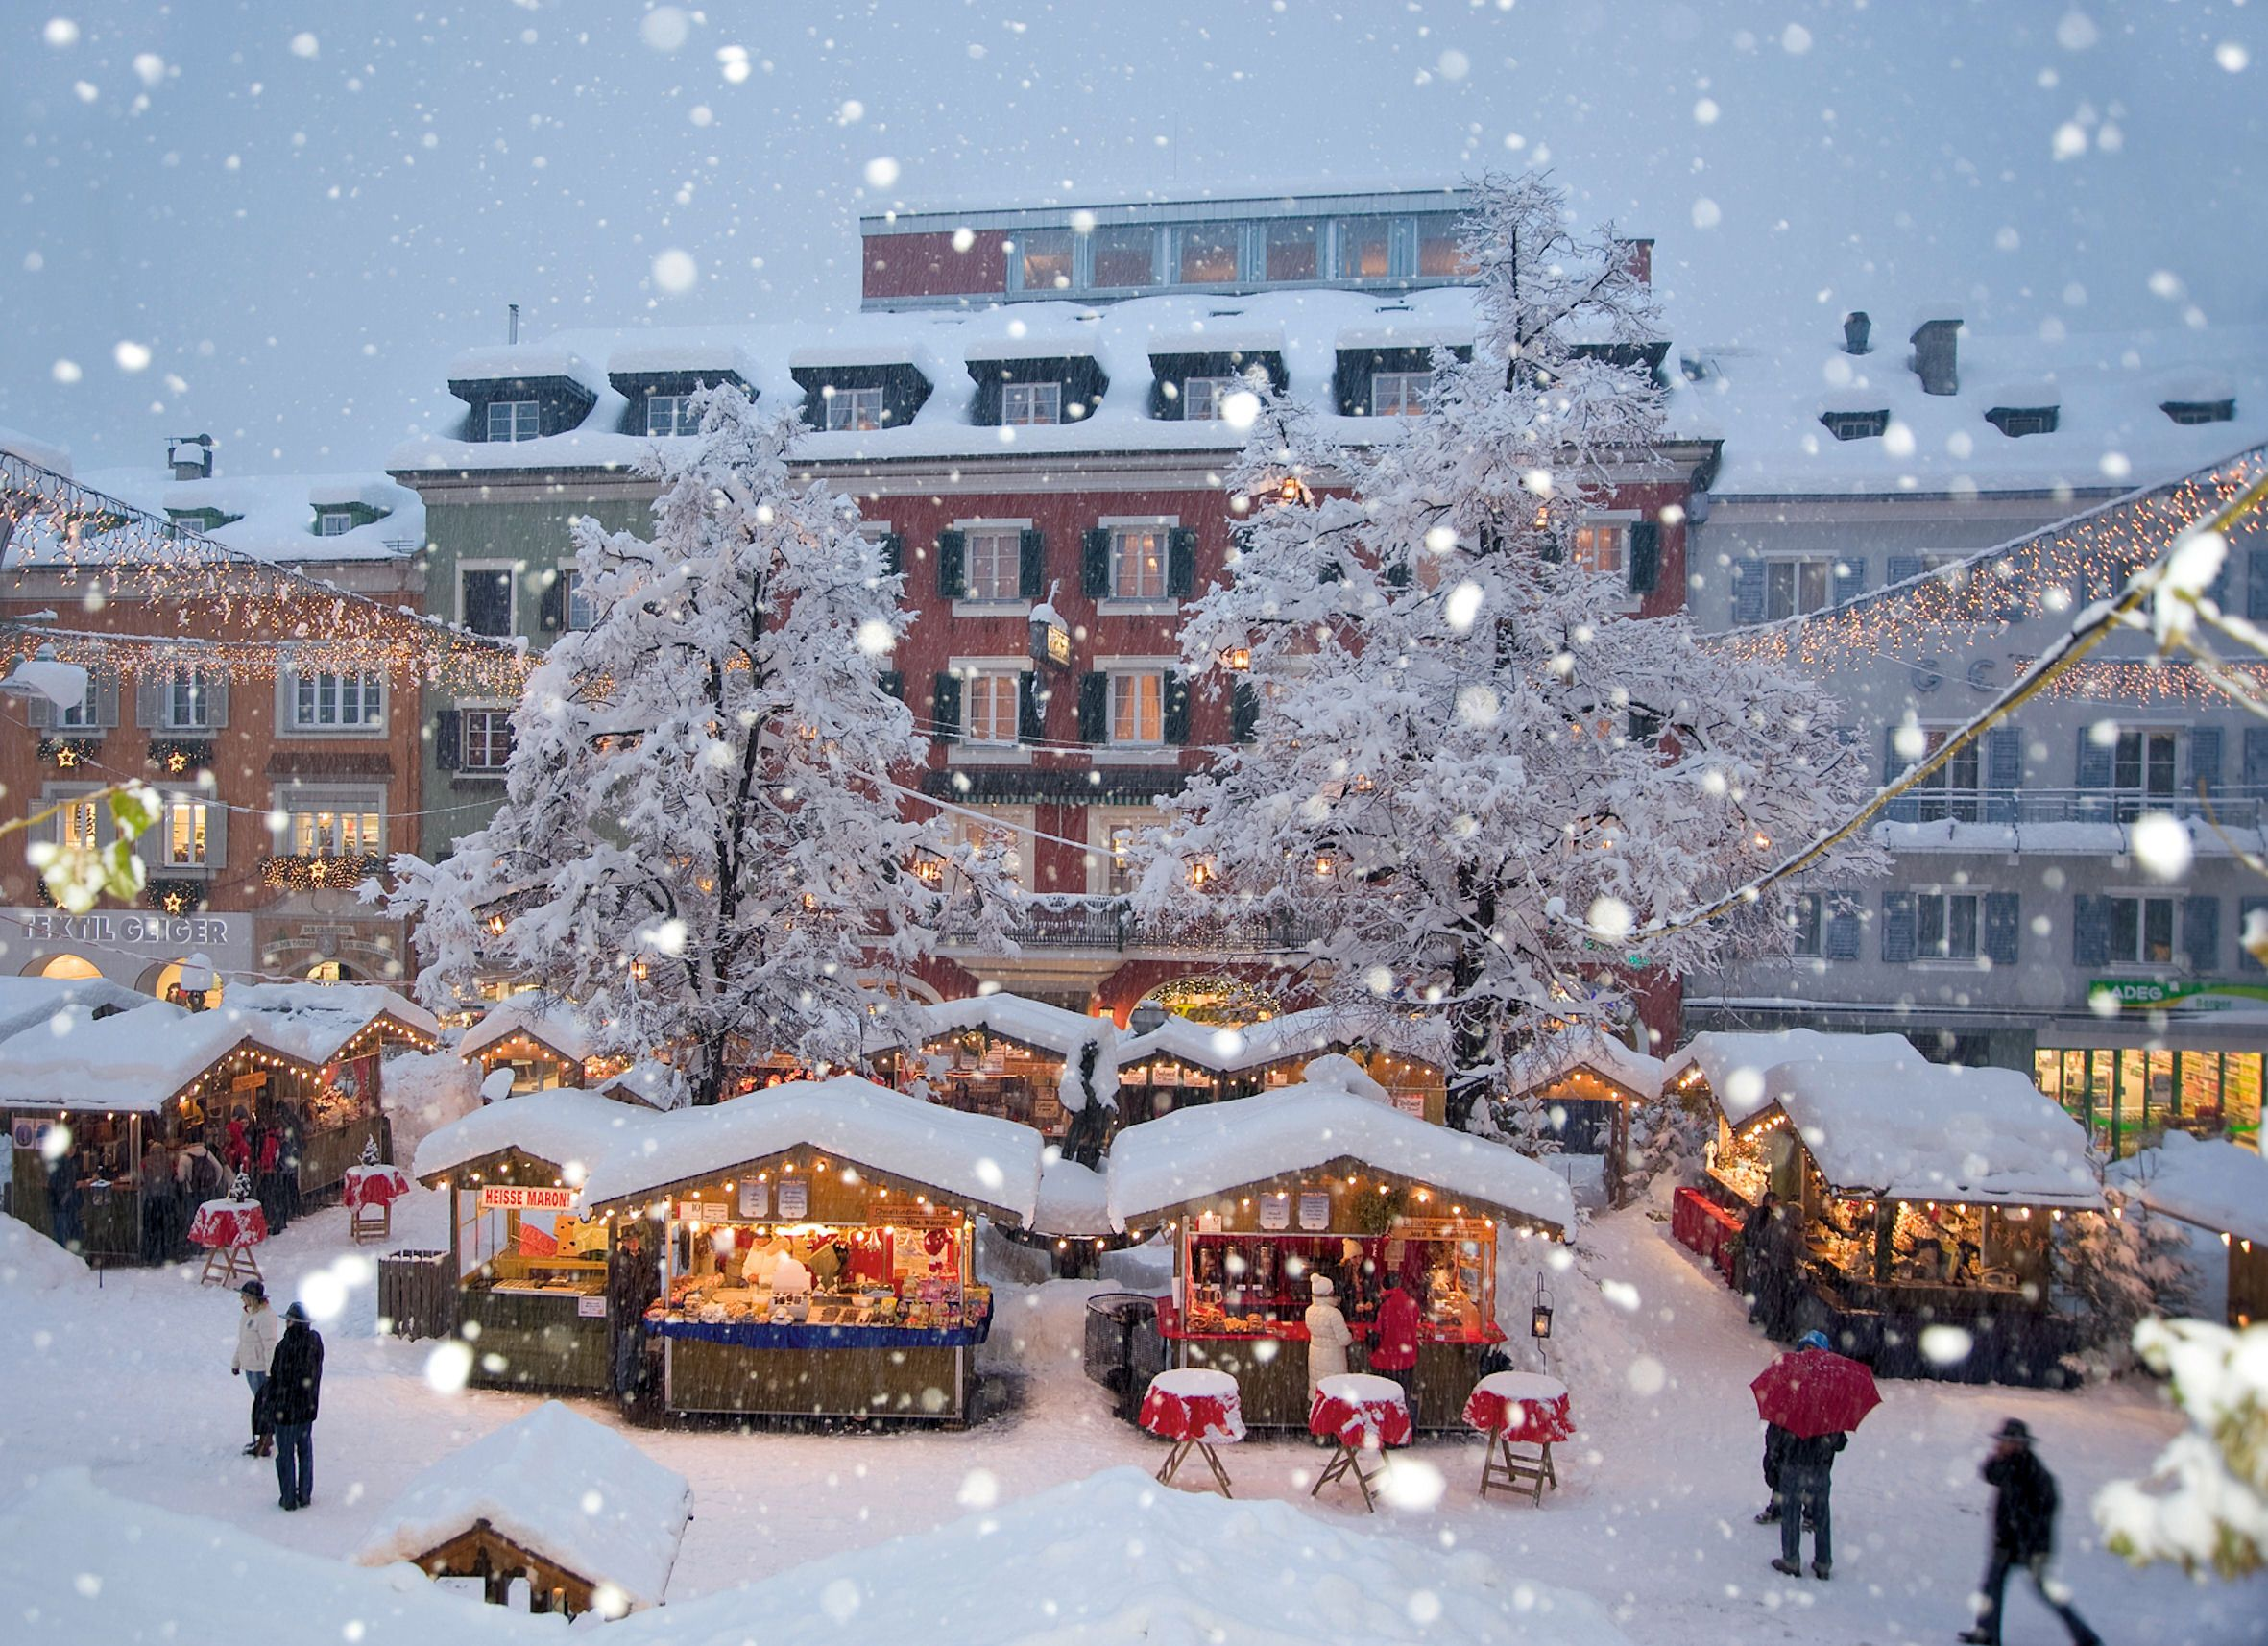 Christmas At The Resort Of Lienz Austria Wallpapers And Images